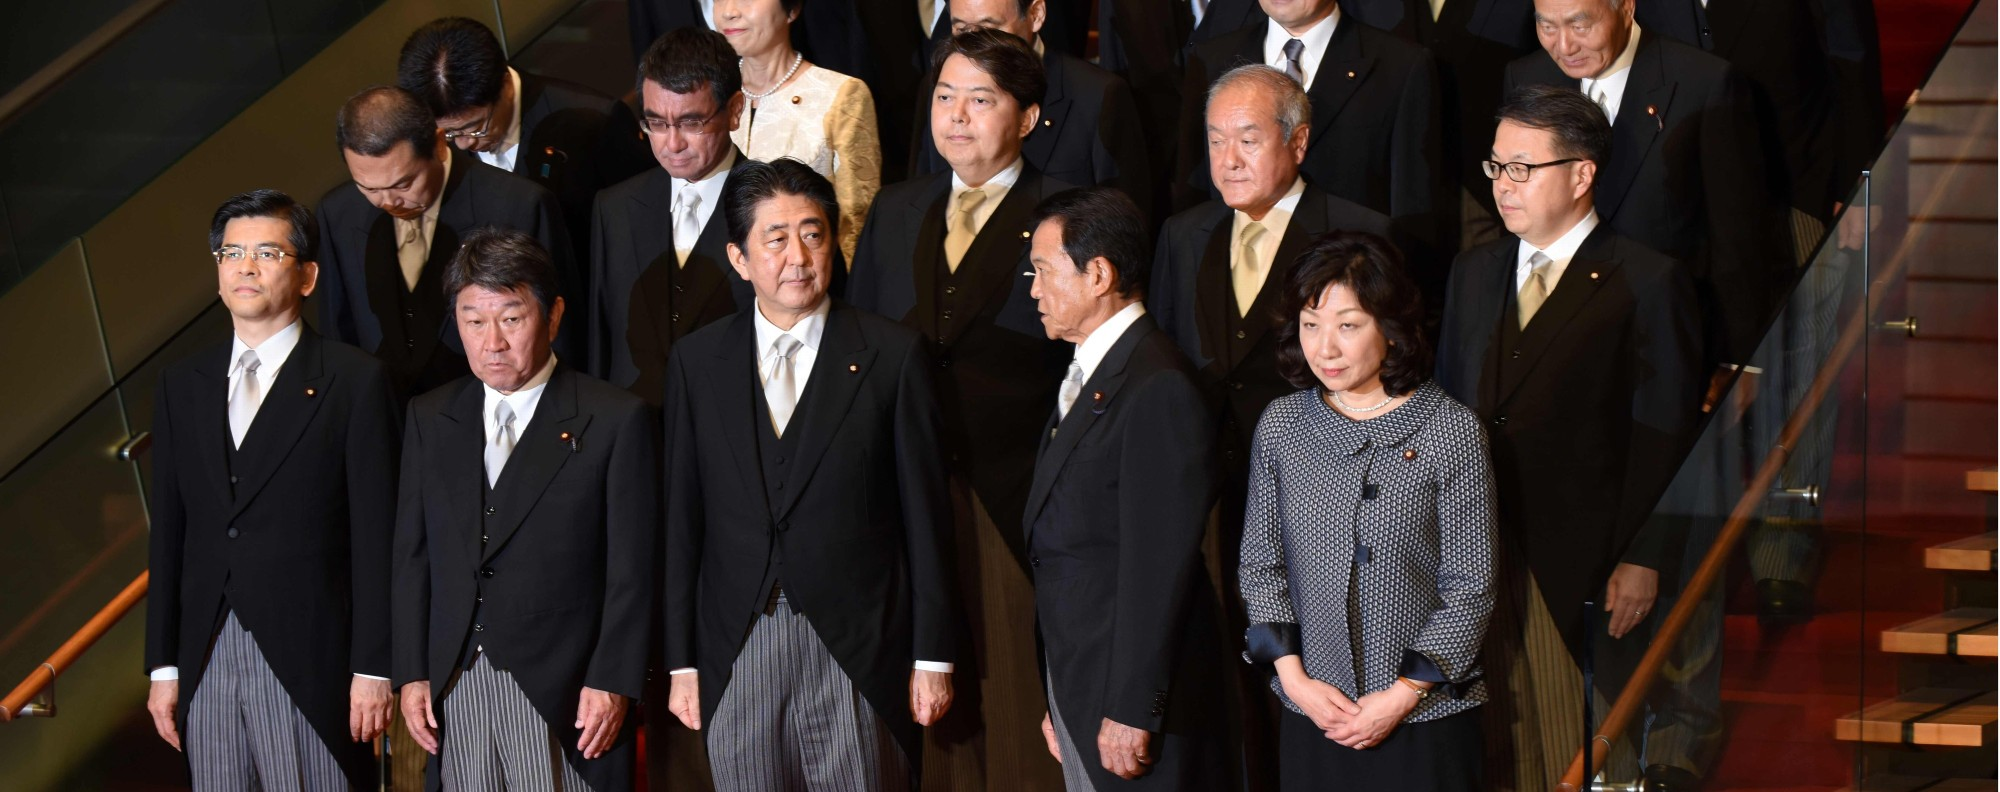 looks prime and members japan cabinet reshuffle photo key retain diplomacy politics e shinzo may defense ministers s seoul a n abe pick national wednesday his new minister beijing of news for evening controversy gather invites chief irk